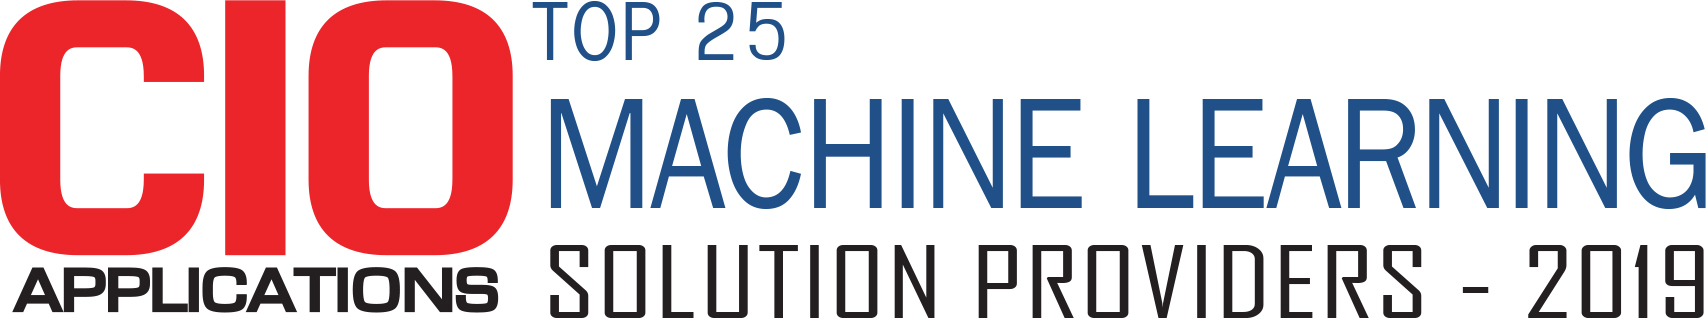 Top 25 Machine Learning Solution Companies - 2019